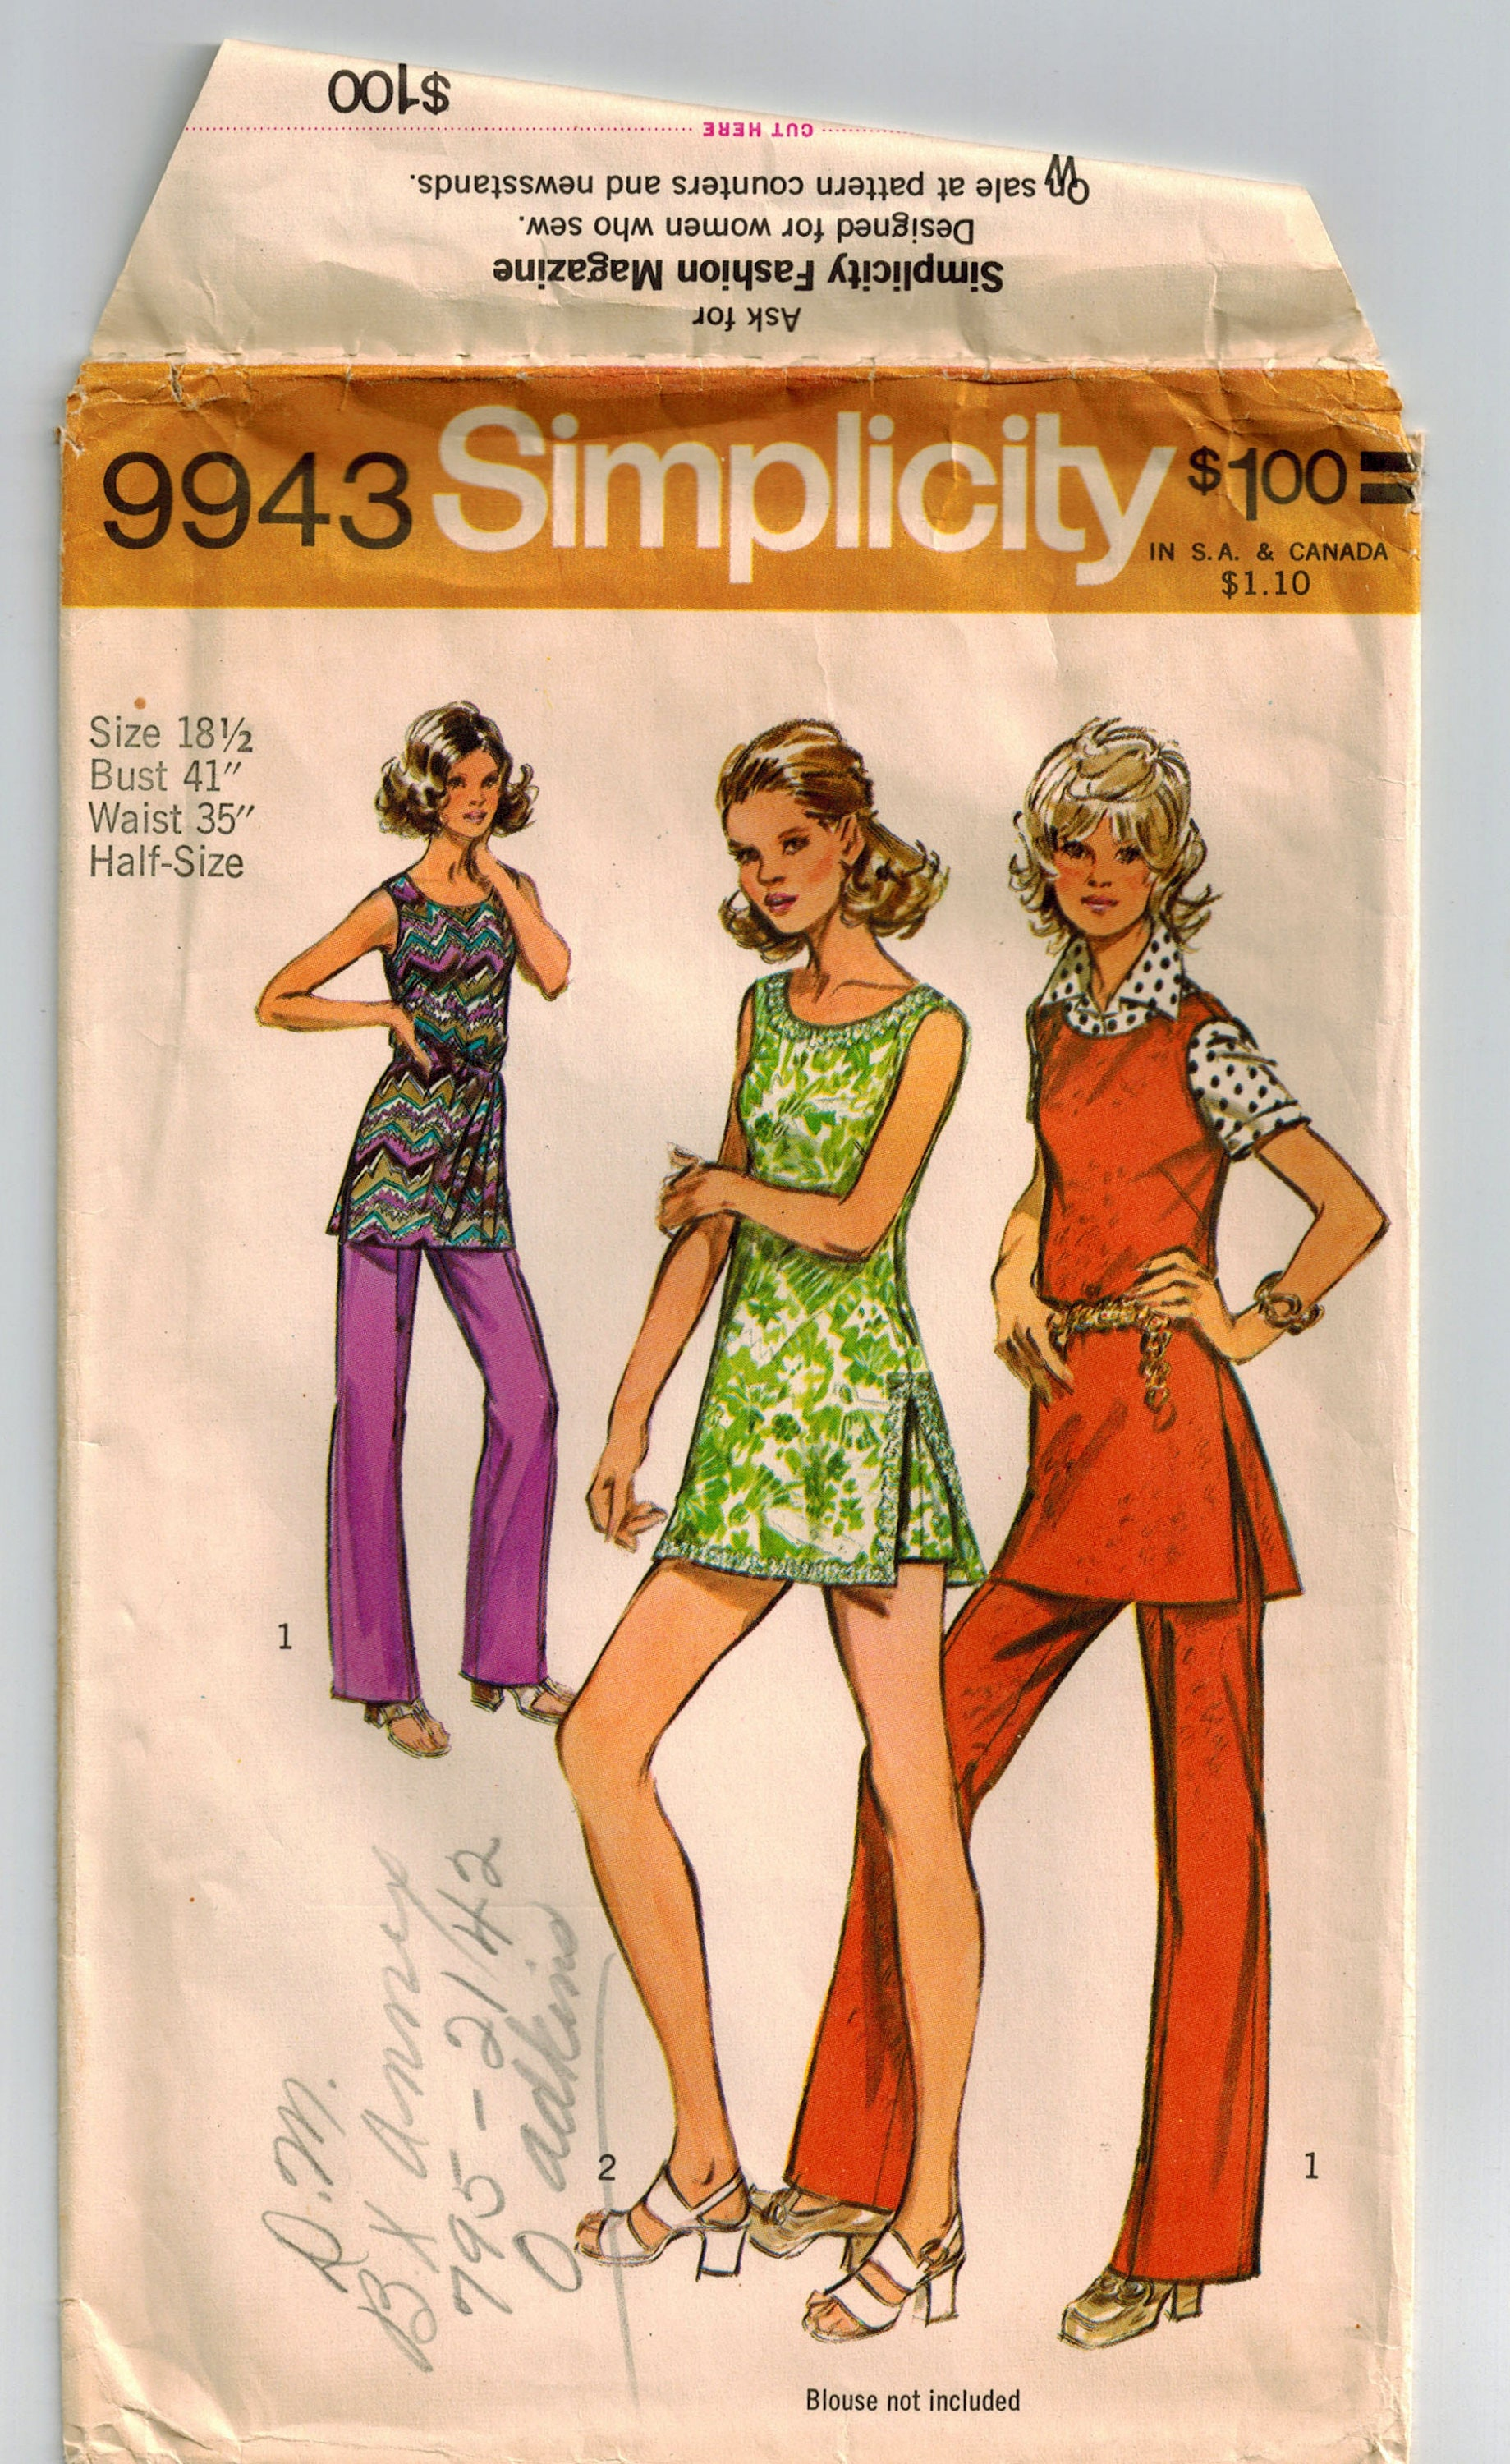 350344391d2 Vintage 70 s Misses Tunic Pants Shorts Sewing Pattern Bust 41 Back Zipper  Sleeveless Low Round Neckline Side Slits Self Fabric Tie Belt from ...